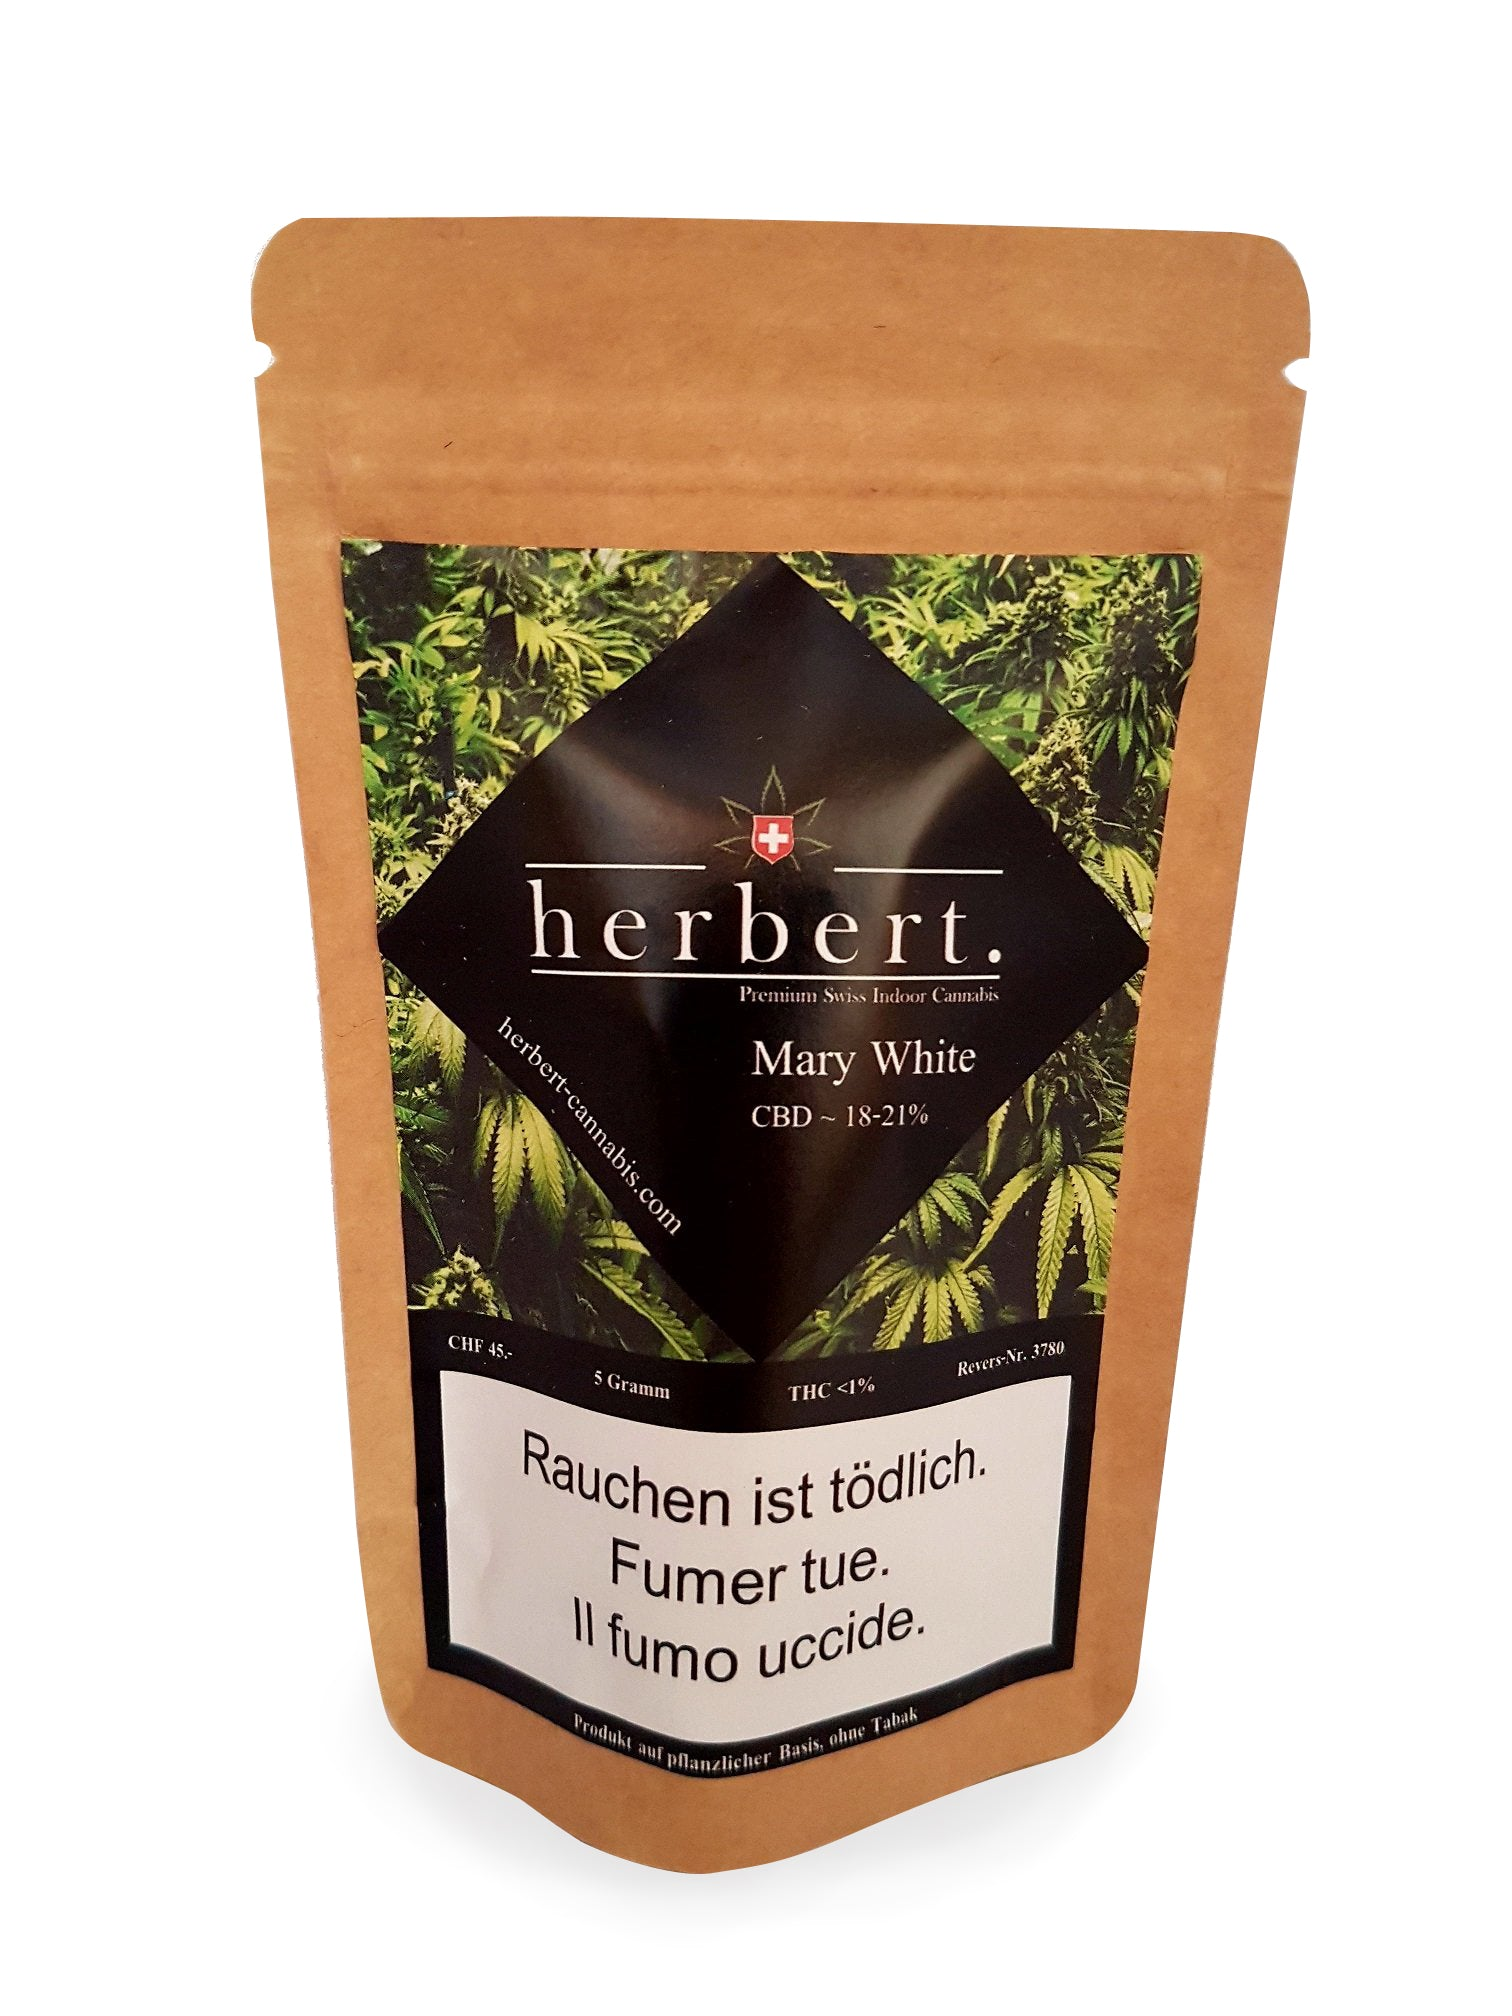 Herbert - Mary White - CBD Cannabis | Herbert | CBD Cannabis | uWeed | Swiss CBD Shop | Buy Online Shop CBD Switzerland